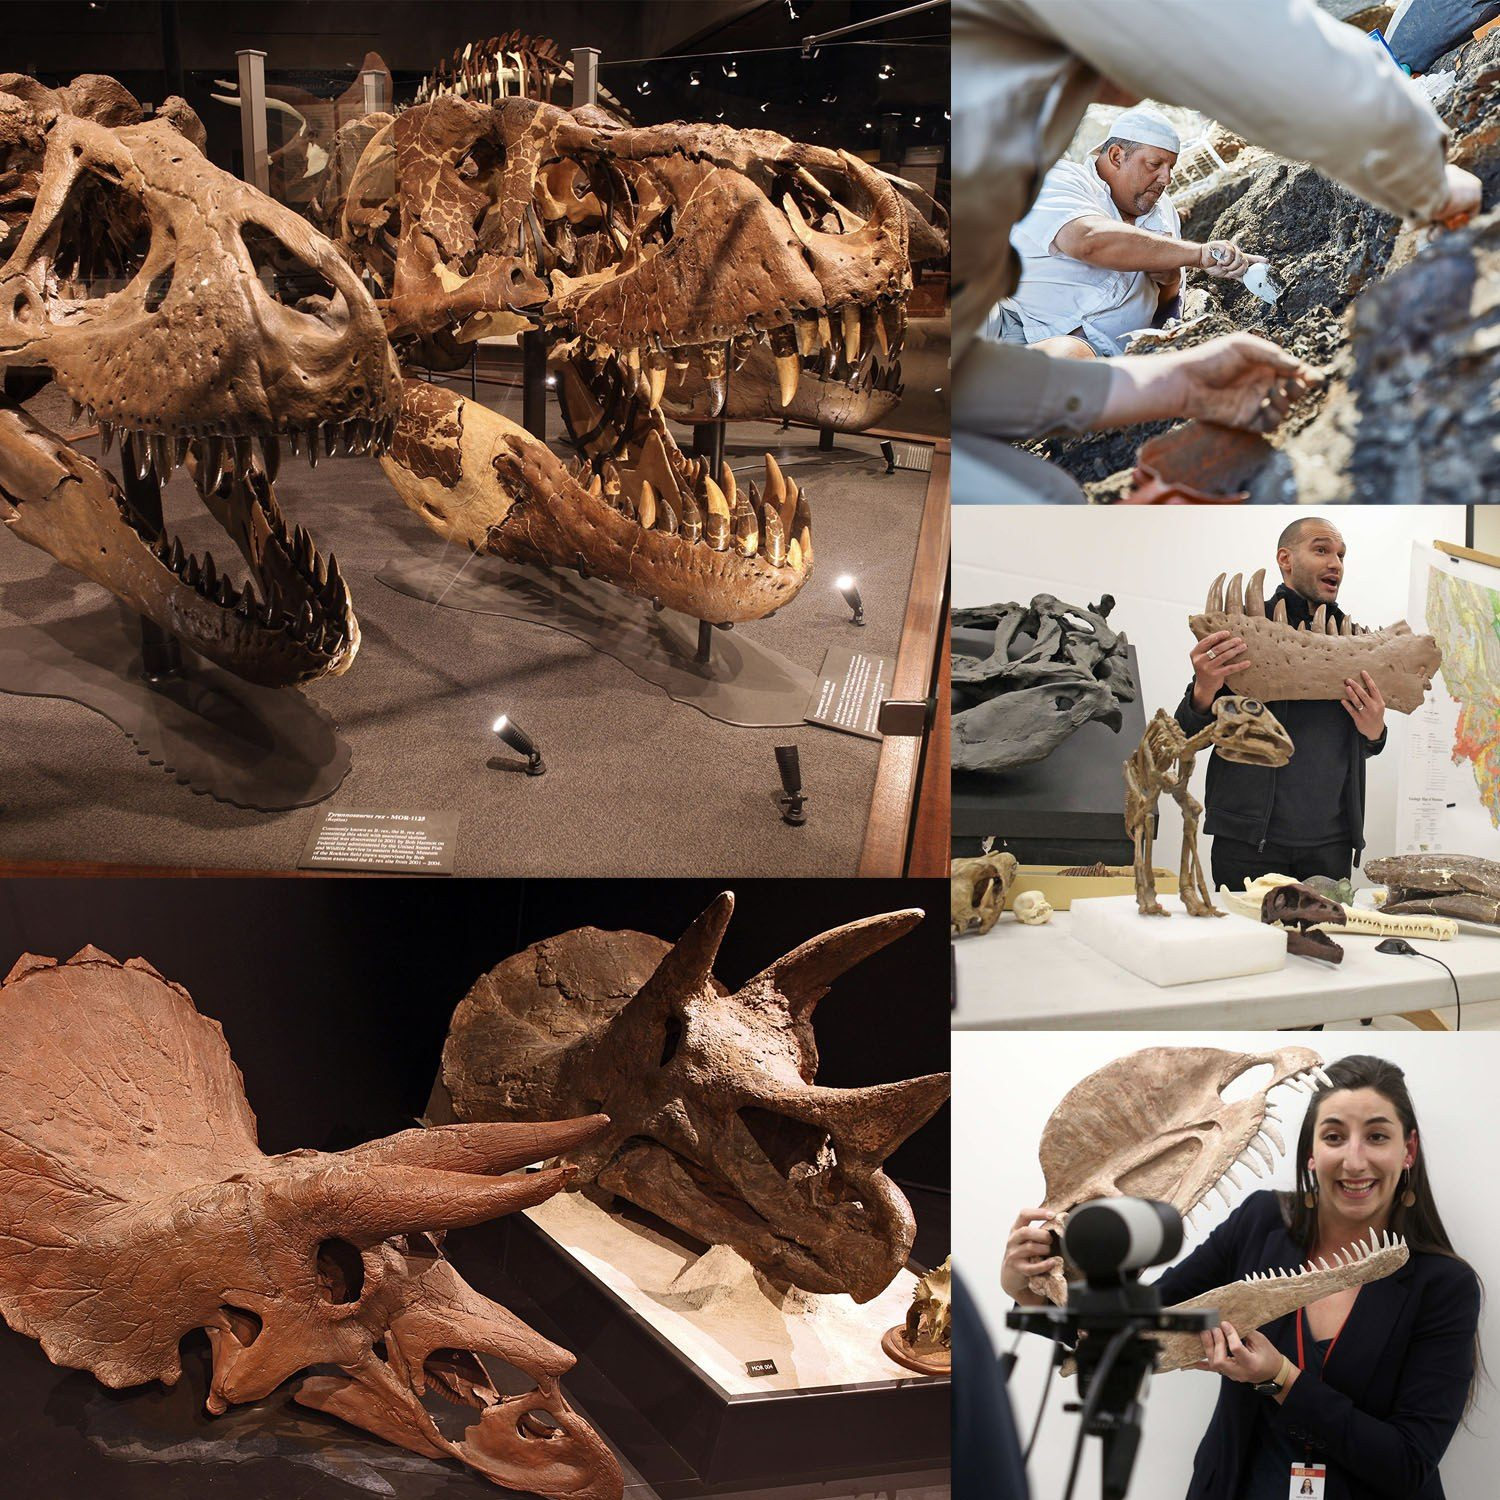 A collage of T. rex and triceraptops skulls on display,  two museum staff members giving presentations while holding or pointing to a paleo fossil, and a couple of staff or students digging up a triceratops fossil.